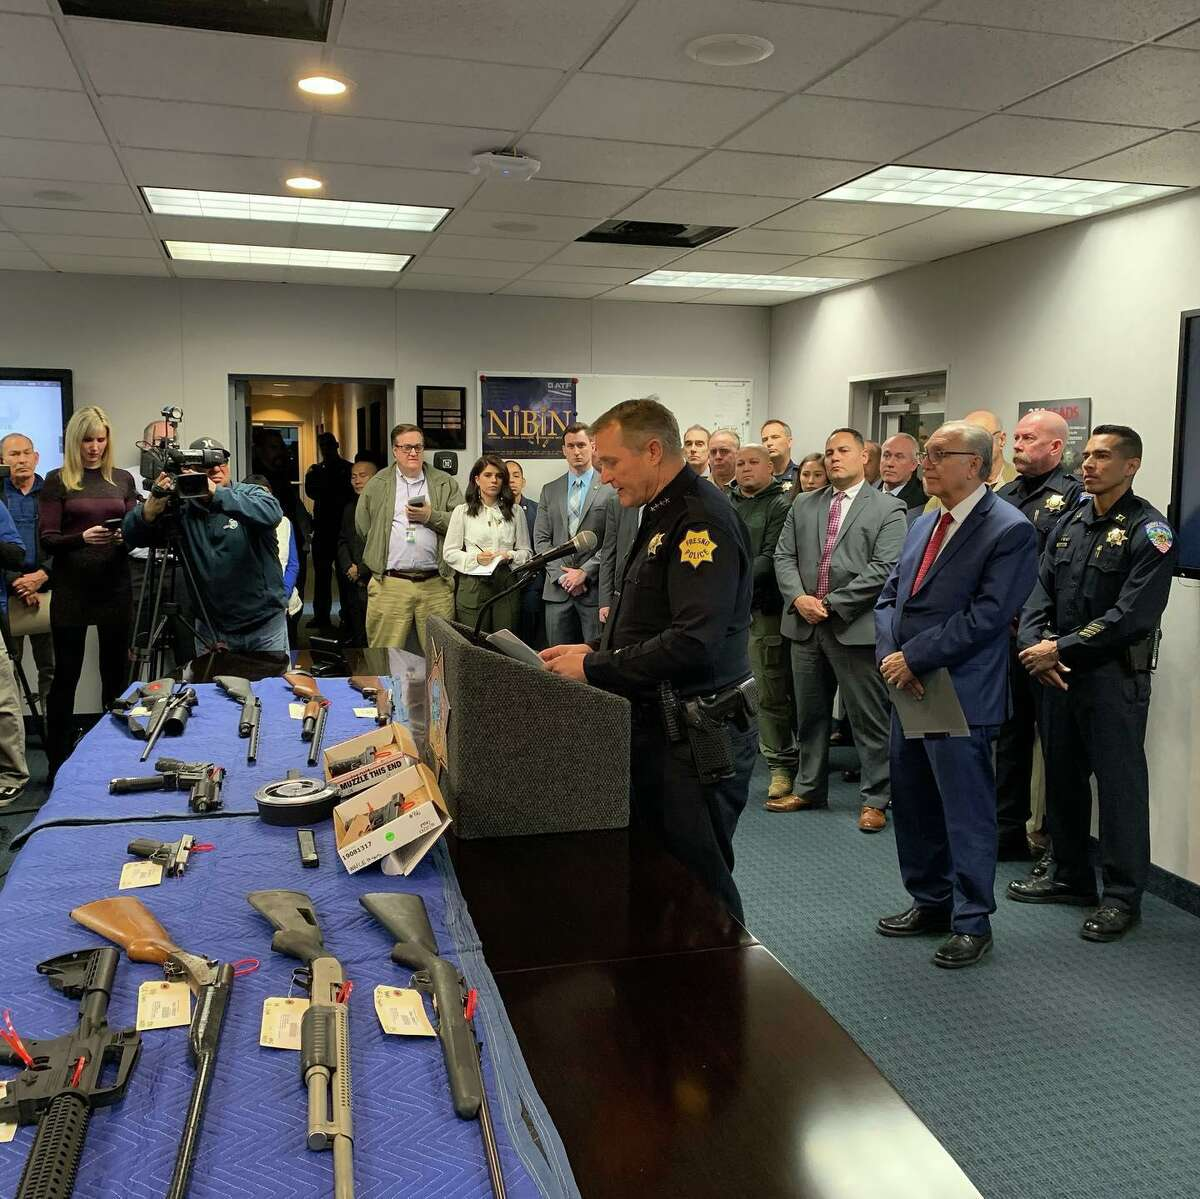 During a press conference on Dec. 31, 2019, the Fresno Police Department displayed a cache of rifles and handguns they had confiscated while six people in connection with a Nov. 17, 2019 mass shooting on the patio of a Fresno home which left four people dead and 10 more wounded as they watched a football game. Chief Andy Hall addresses the media.